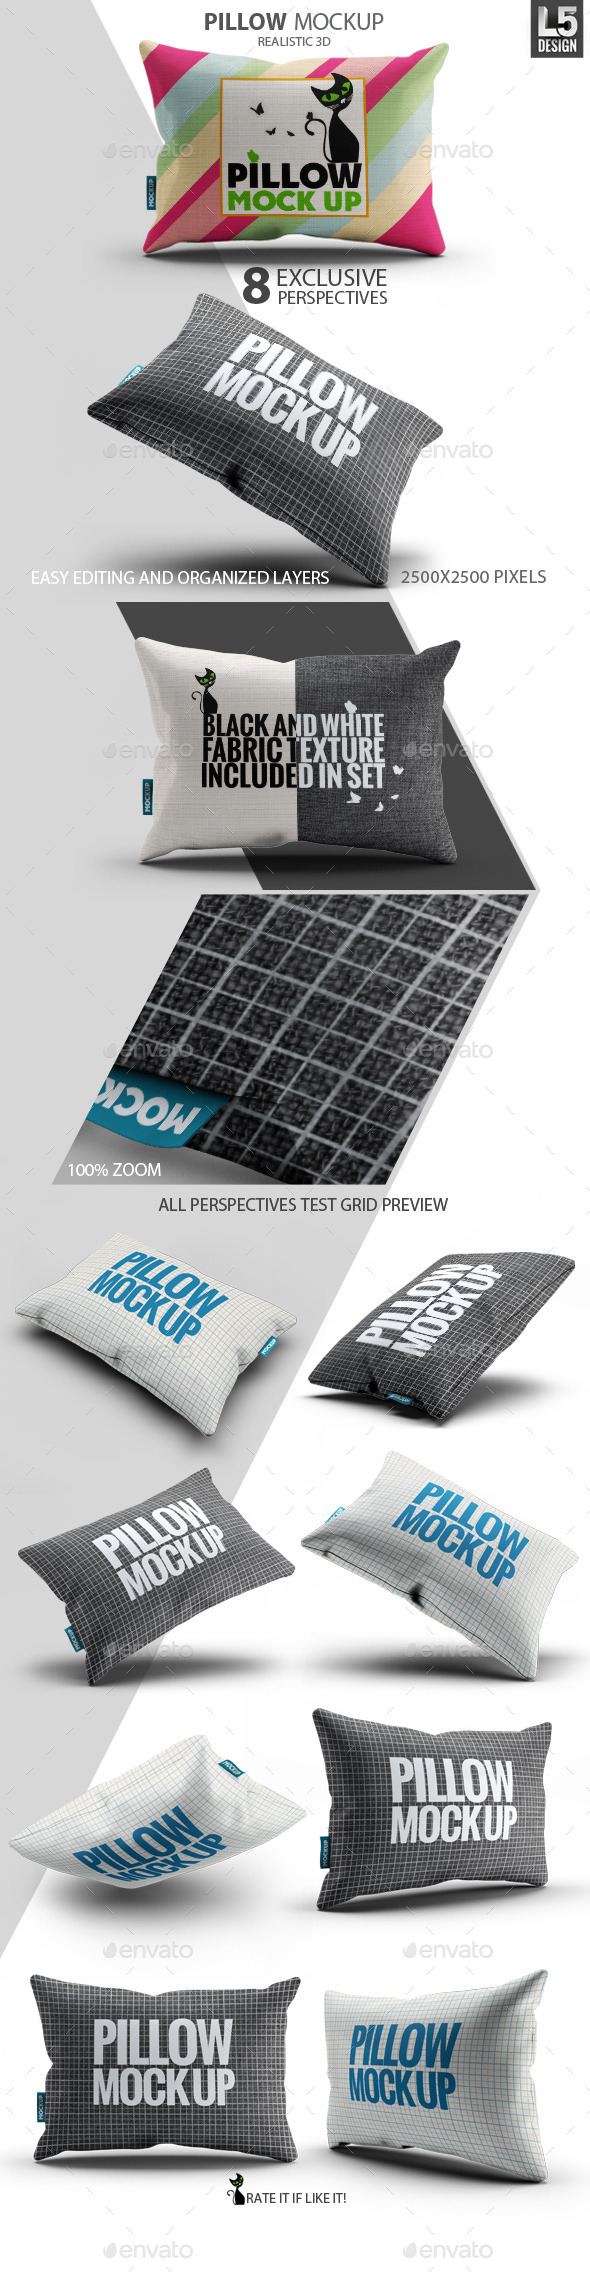 Fabric Pillow Mock-Up - Miscellaneous Product Mock-Ups